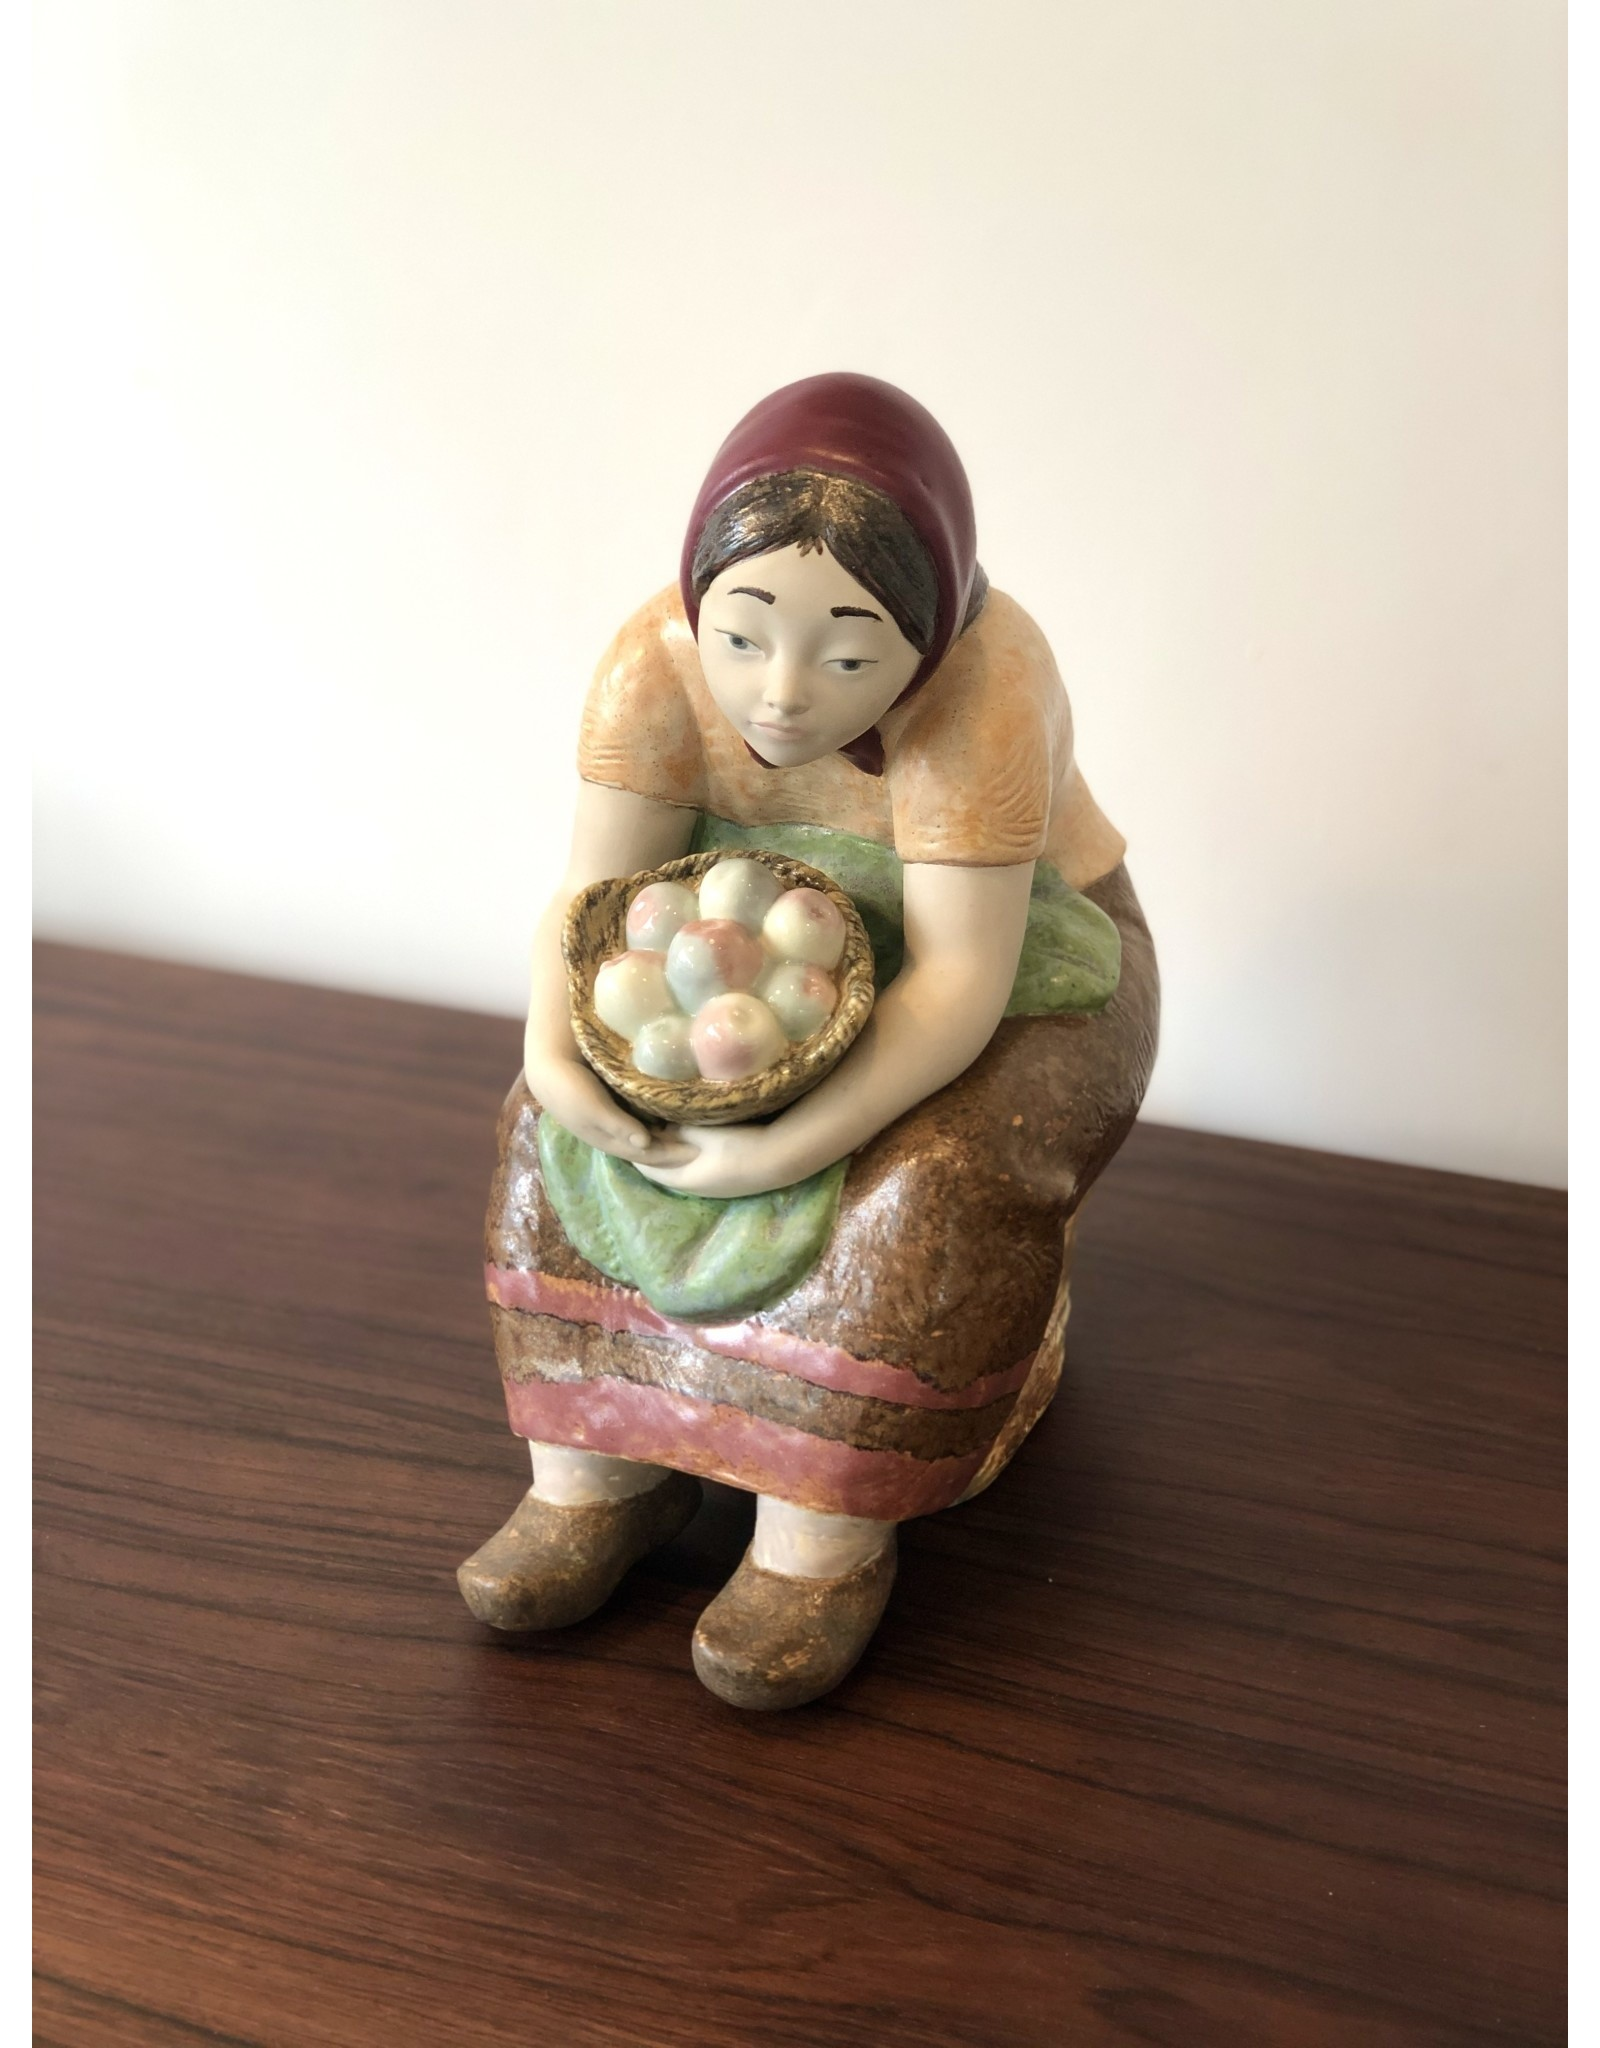 RARE 1970's ZAPHIR FIGURINE OF SEATED FARMER'S WIFE WITH BASKET